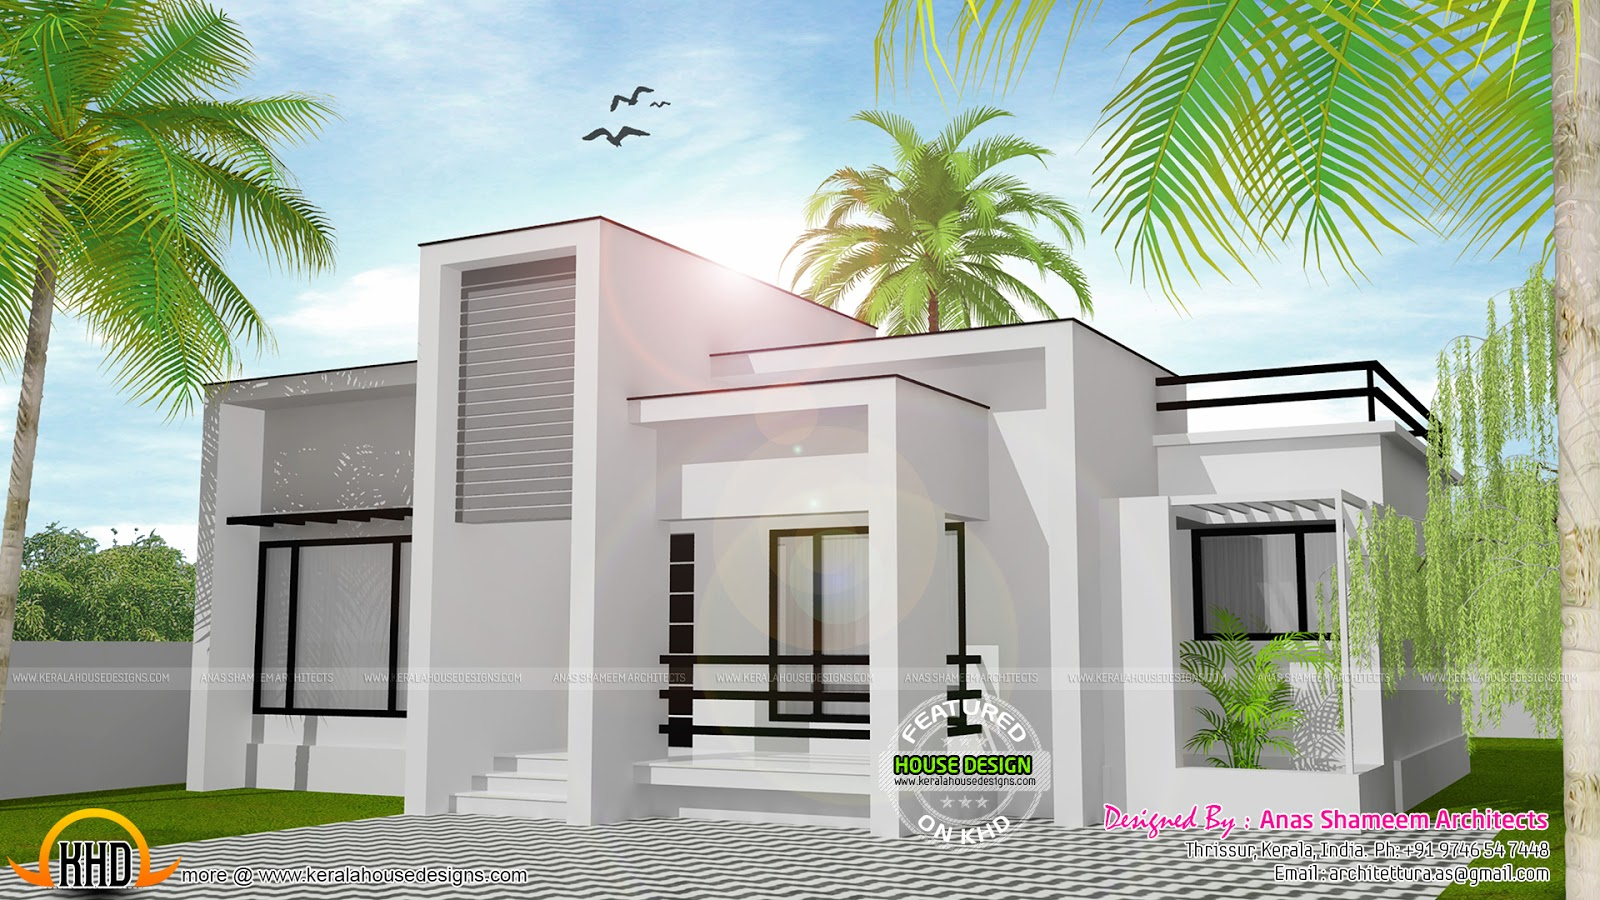 978 sq ft flat roof single floor home kerala home design for House design service